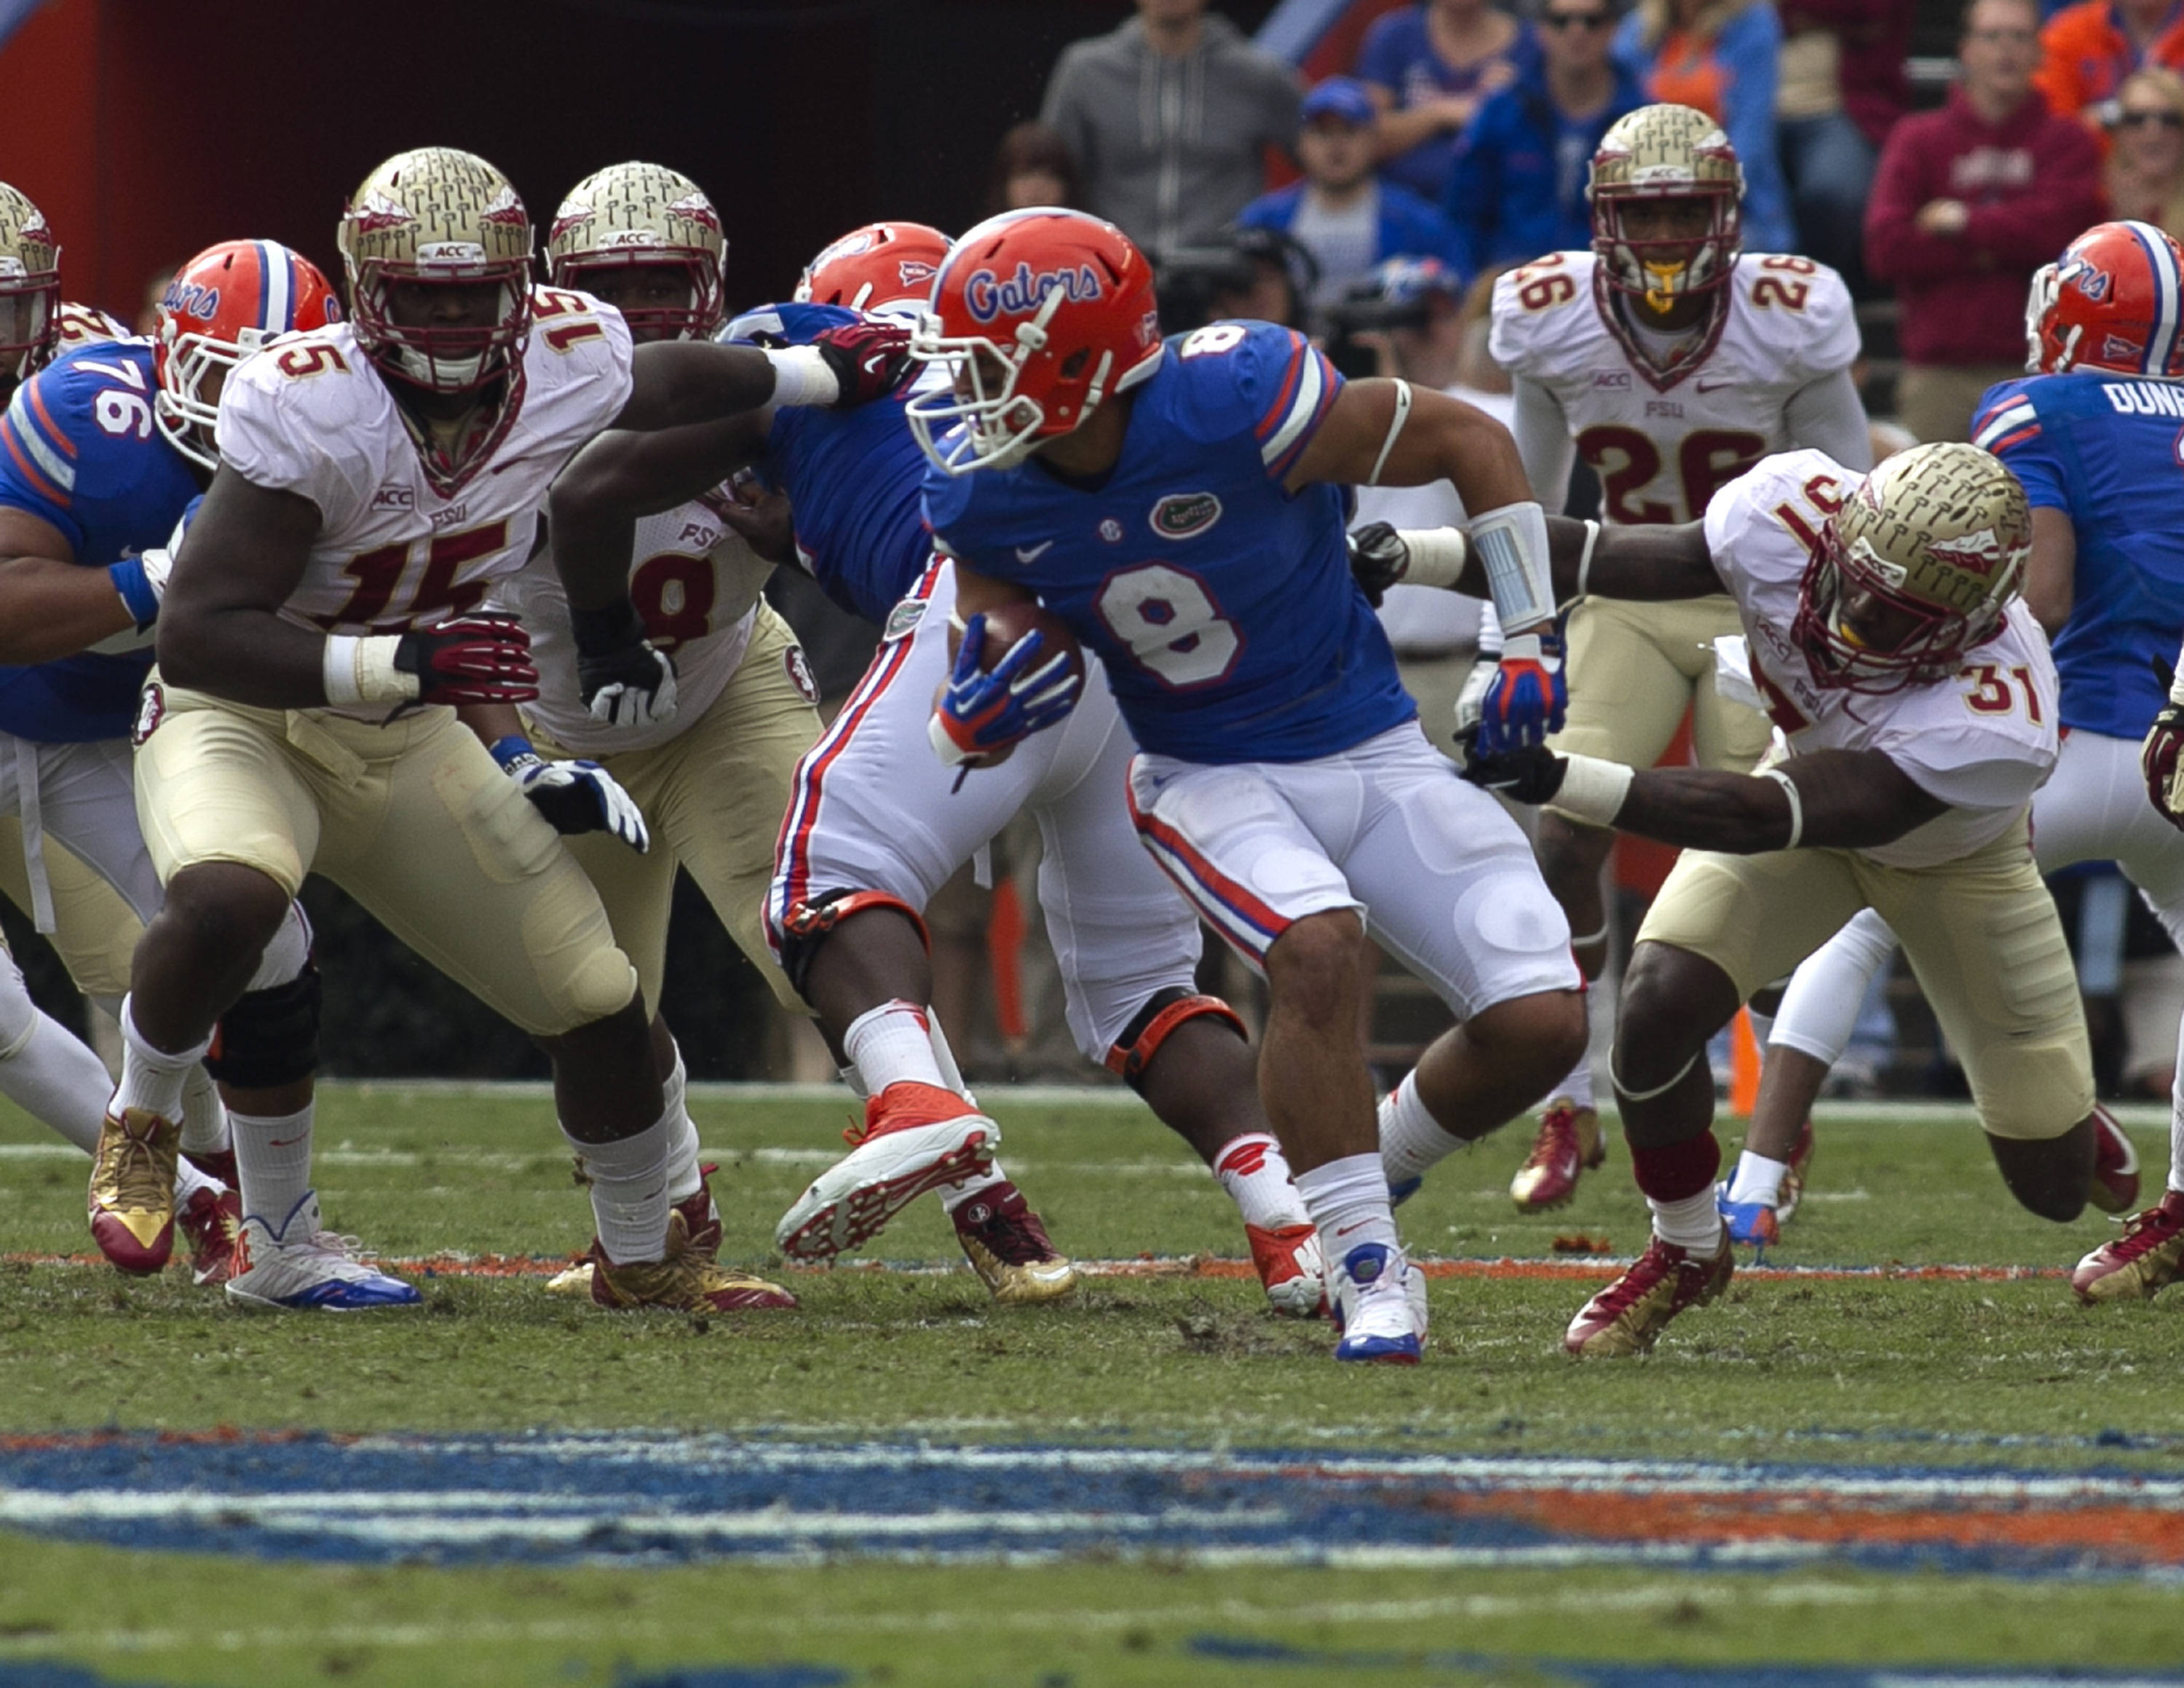 Terrance Brooks (31) with a tackle for a loss, FSU vs Florida, 11-30-13,  (Photo by Steve Musco)